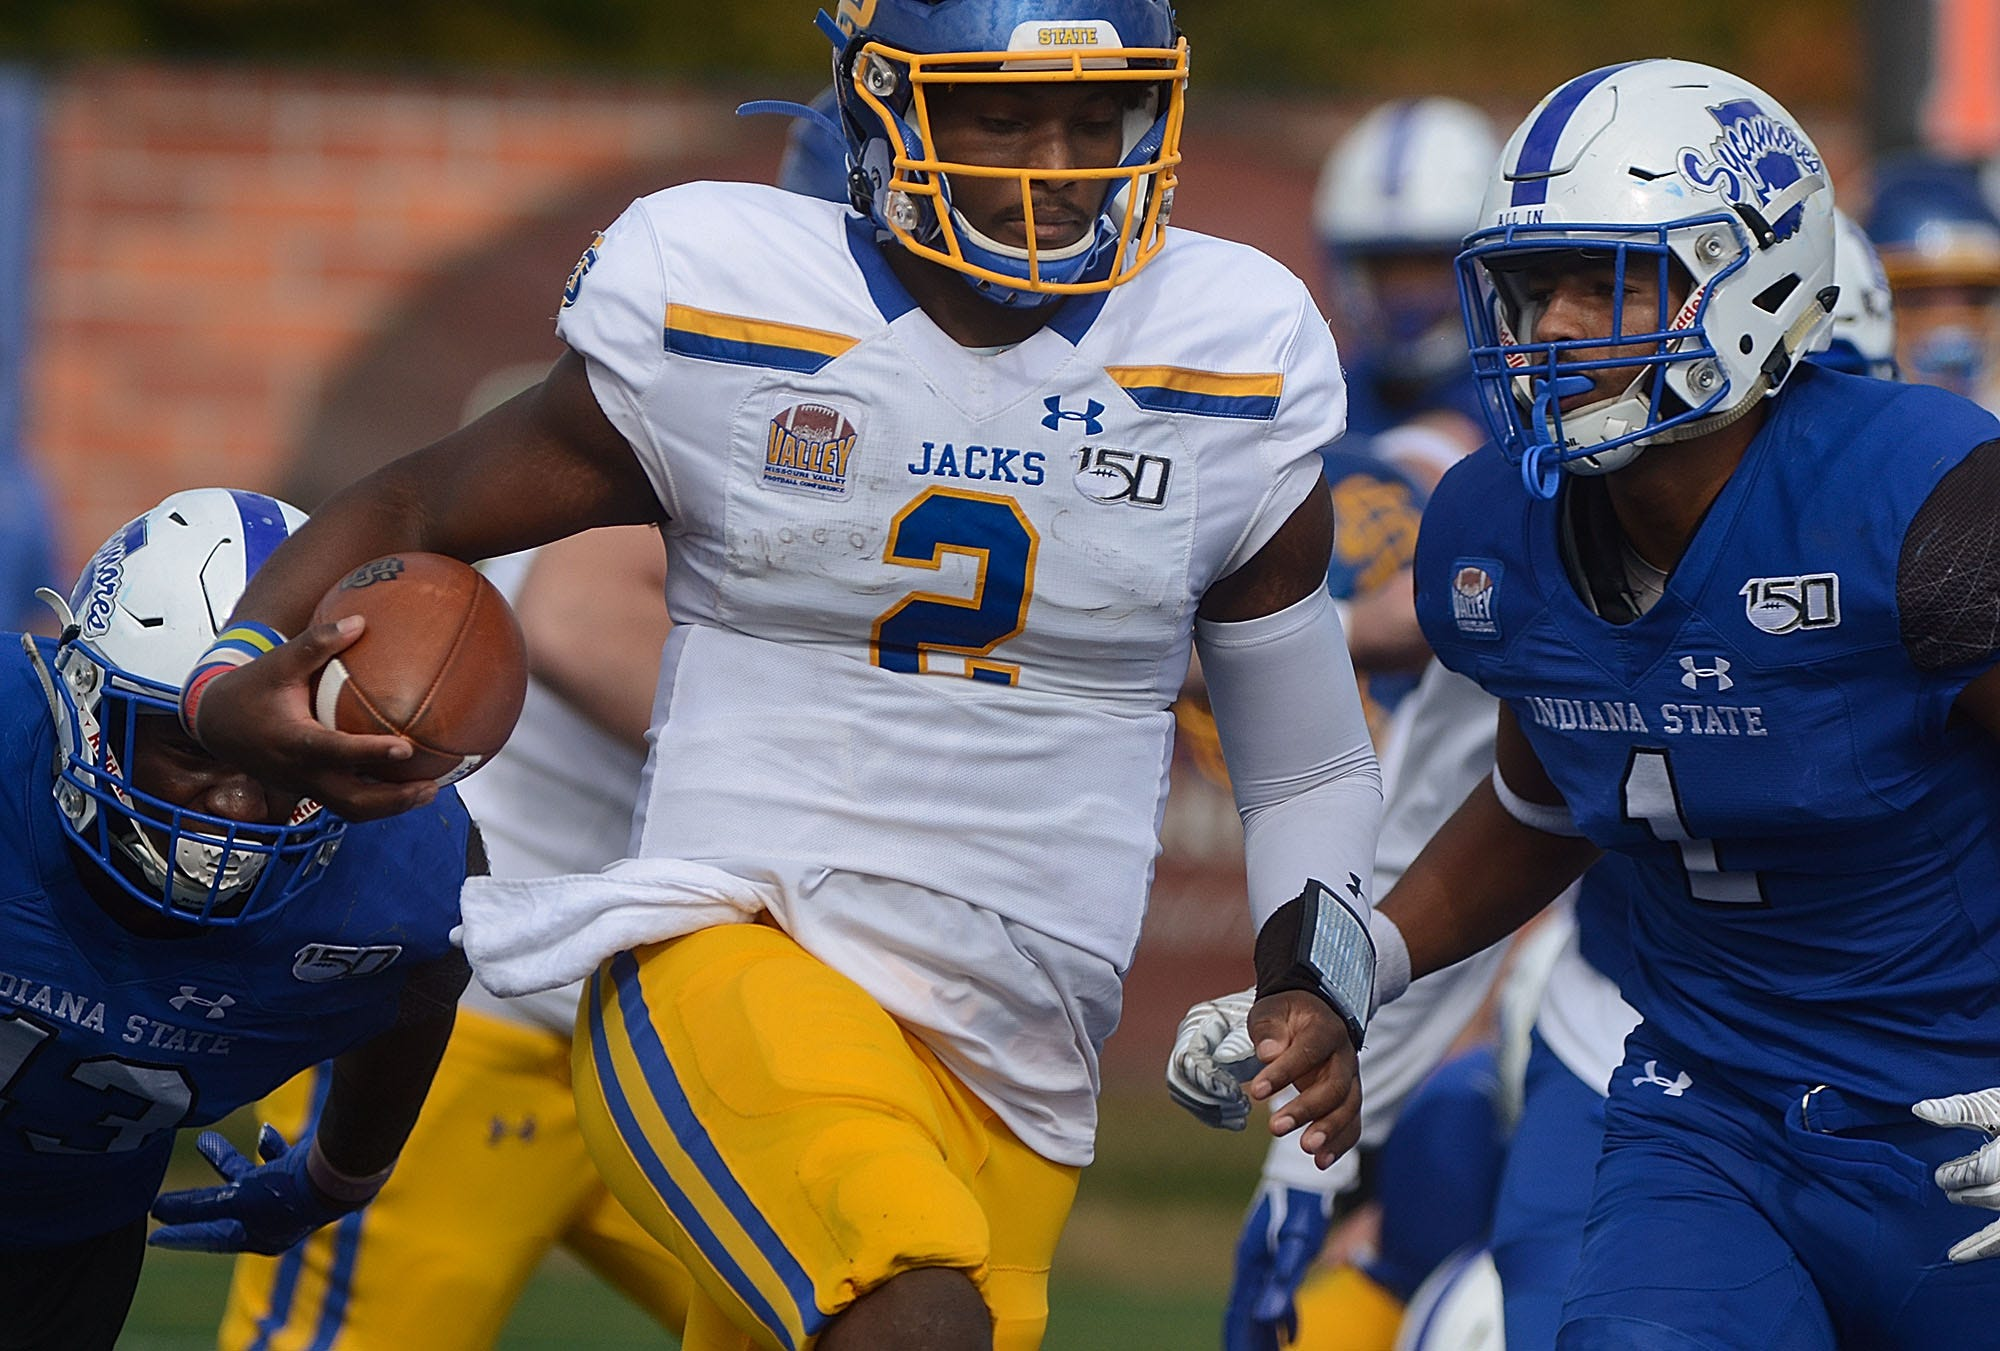 North dakota state jacksonville state betting line download troy bet on it